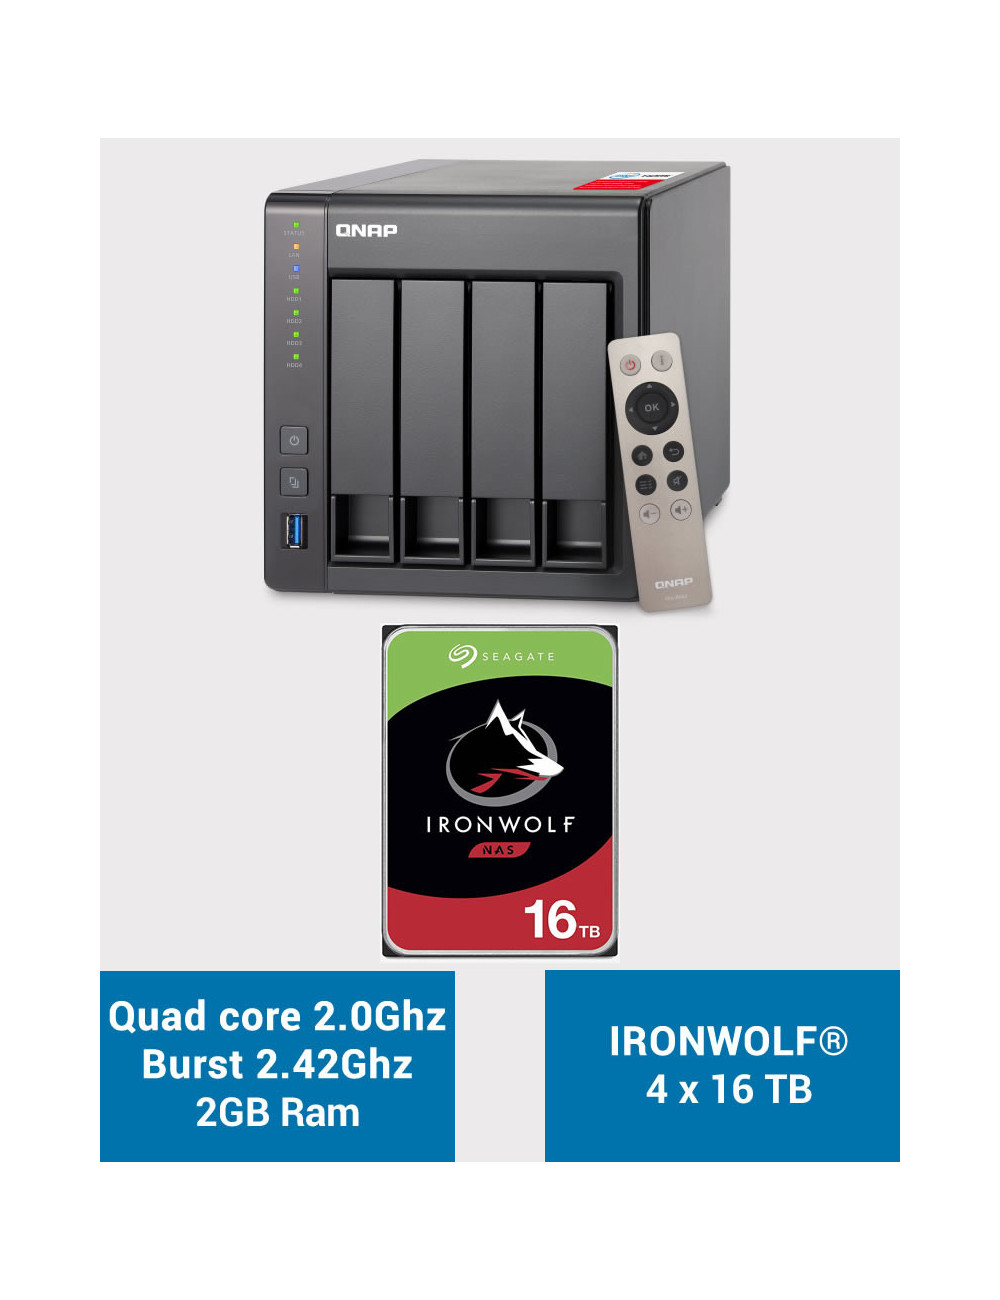 QNAP TS-451+ 2Go Serveur NAS IRONWOLF 64To (4x16To)